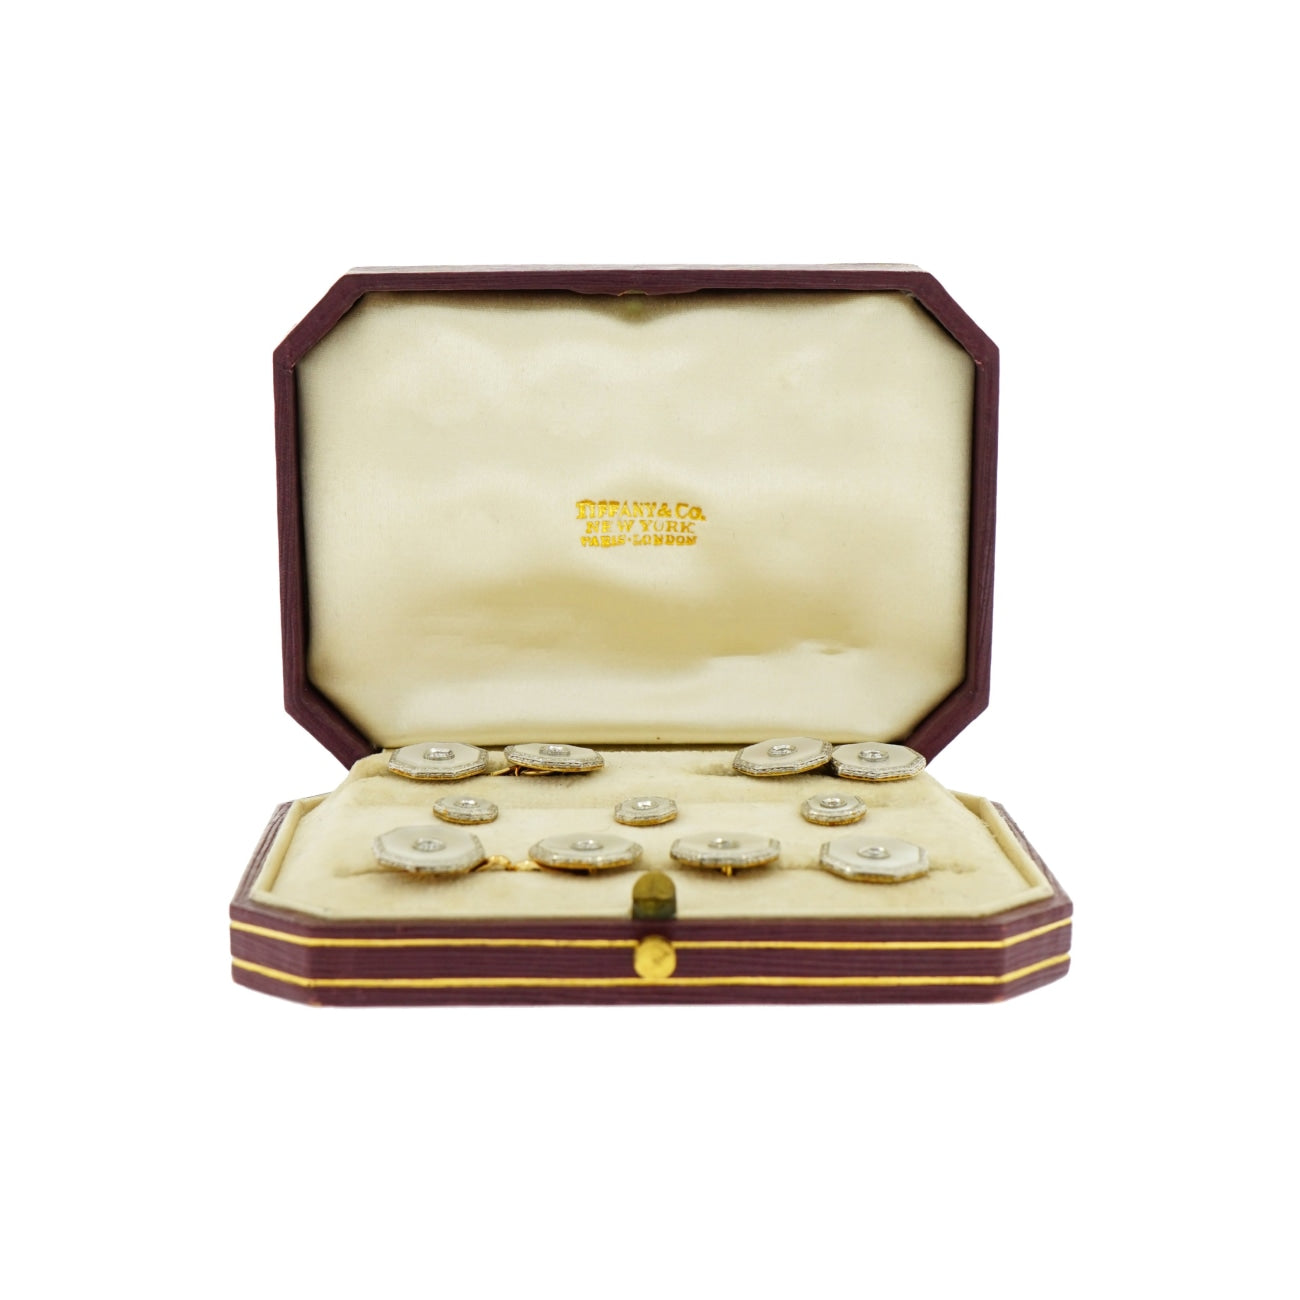 Tiffany & Co. - Estate Jewelry Estate Jewelry - Vintage Tiffany & Co. Cufflinks & Studs Dress Set | Manfredi Jewels